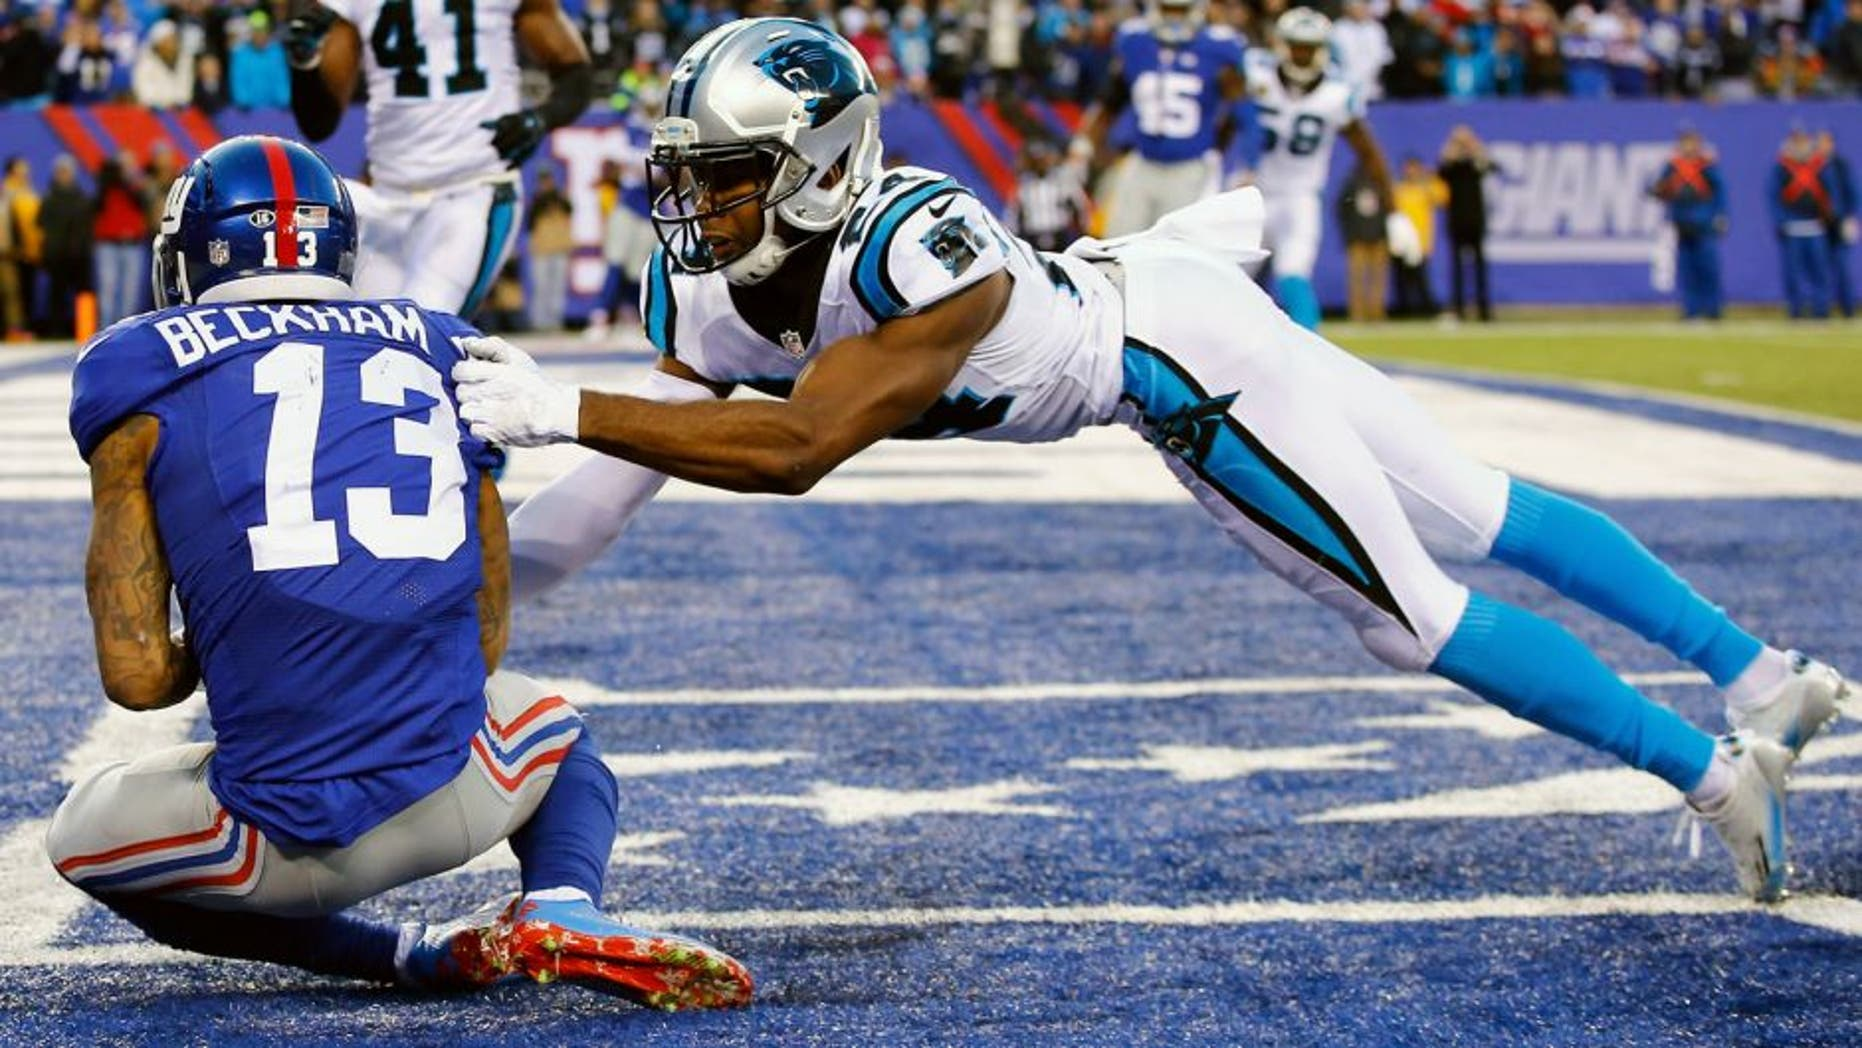 EAST RUTHERFORD, NJ - DECEMBER 20: Odell Beckham #13 of the New York Giants scores a game tying touchdown against Josh Norman #24 of the Carolina Panthers in the fourth Quarter during their game at MetLife Stadium on December 20, 2015 in East Rutherford, New Jersey. (Photo by Al Bello/Getty Images)